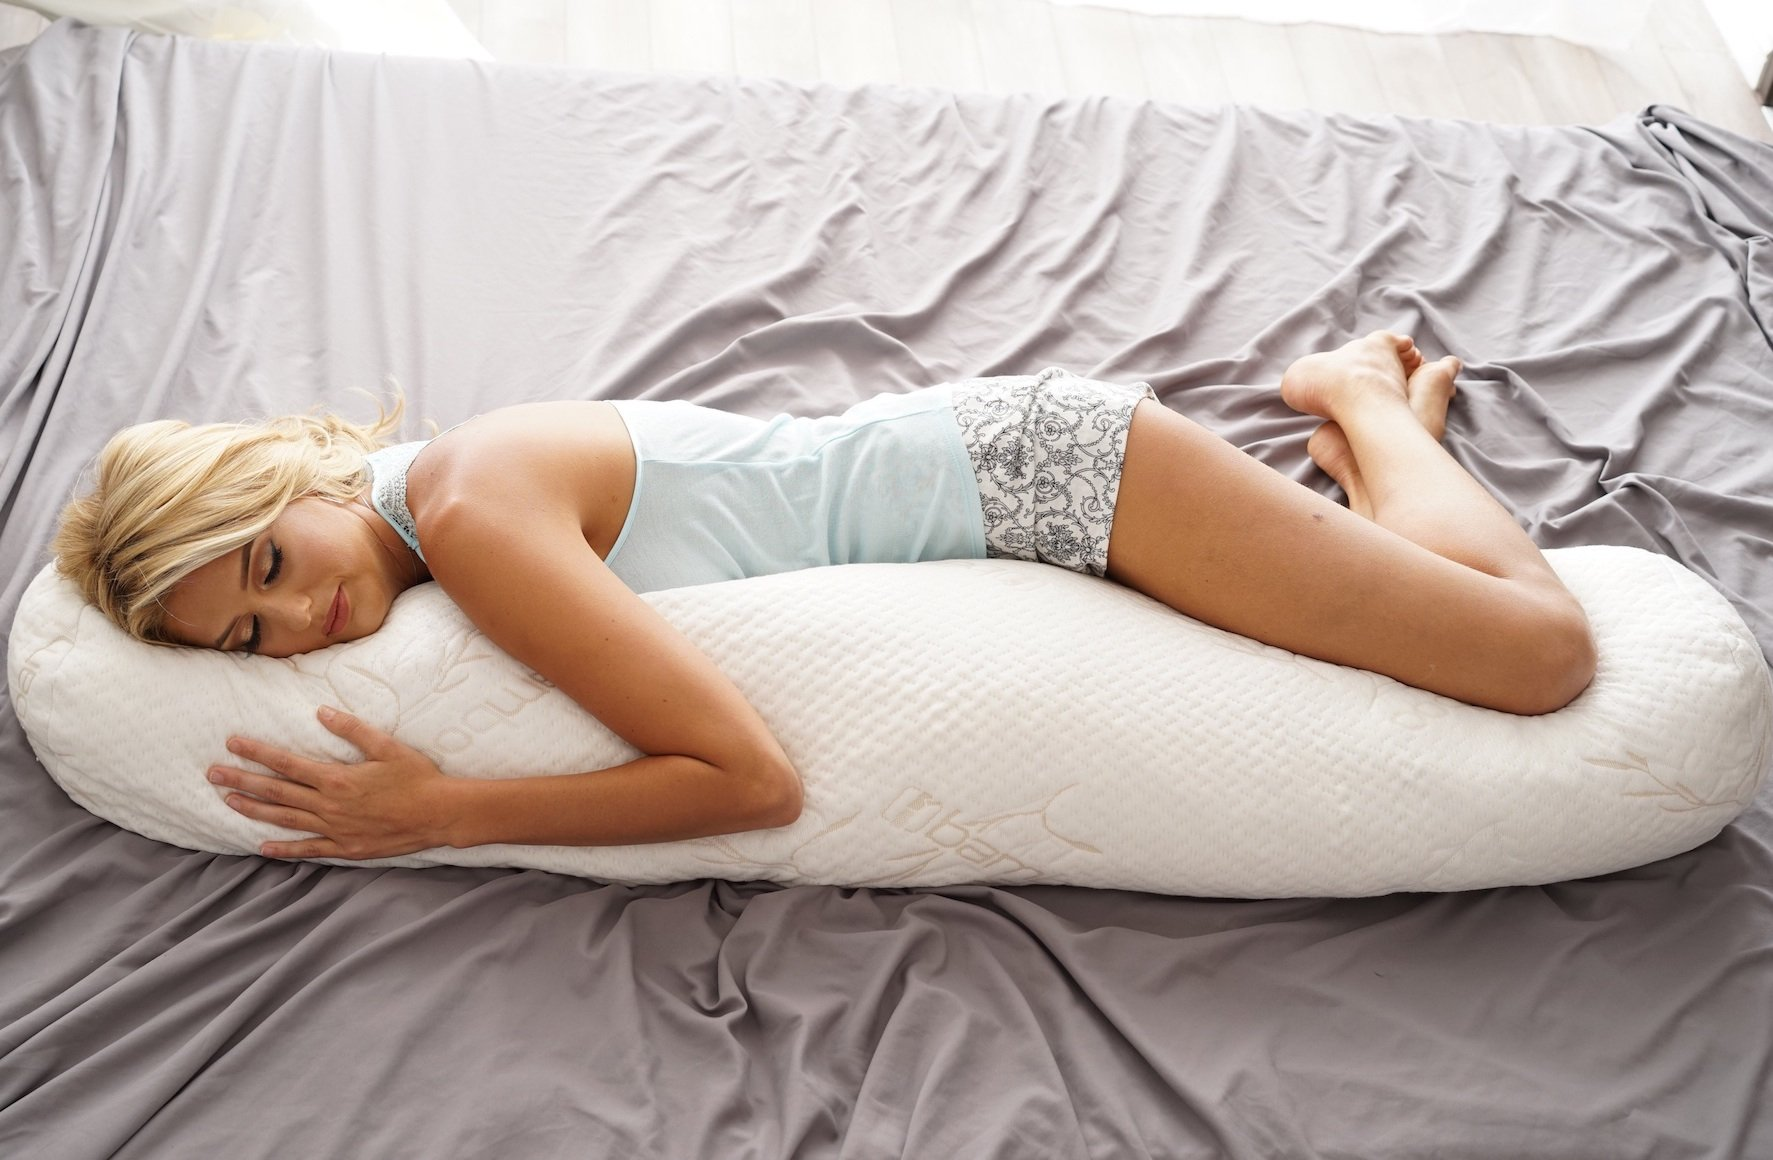 Body Pillow – Organic Latex Interior & Plush Bamboo Cover – Perfect Maternity & Pregnancy Pillow – Provides Full Body Orthopedic Support & Pain Relief for Back, Hips, Shoulders & Neck